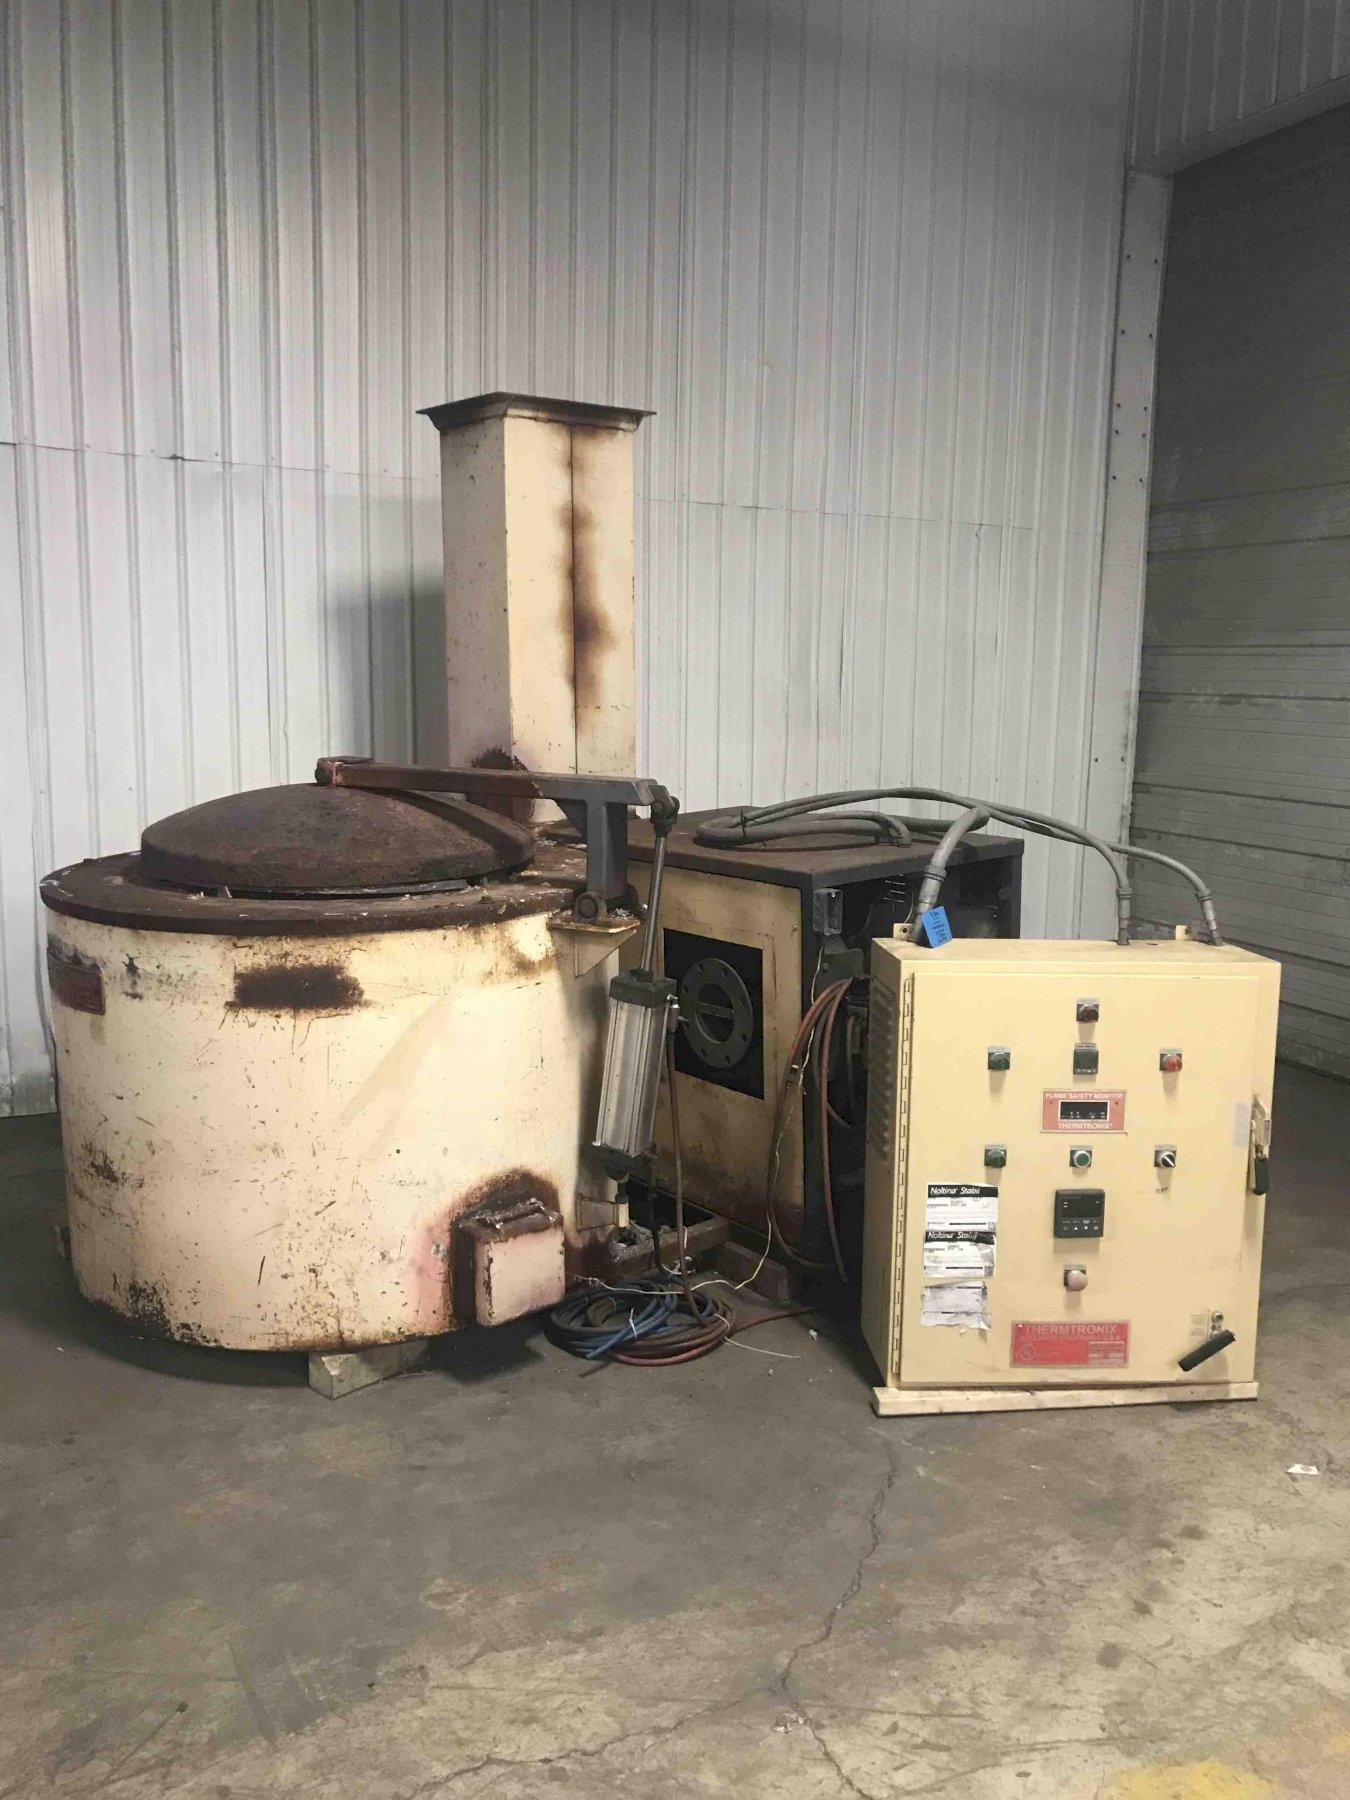 THERMTRONIX MODEL GS-700 GAS FIRED MELTING FURNACE S/N 089122 WITH CONTROLS